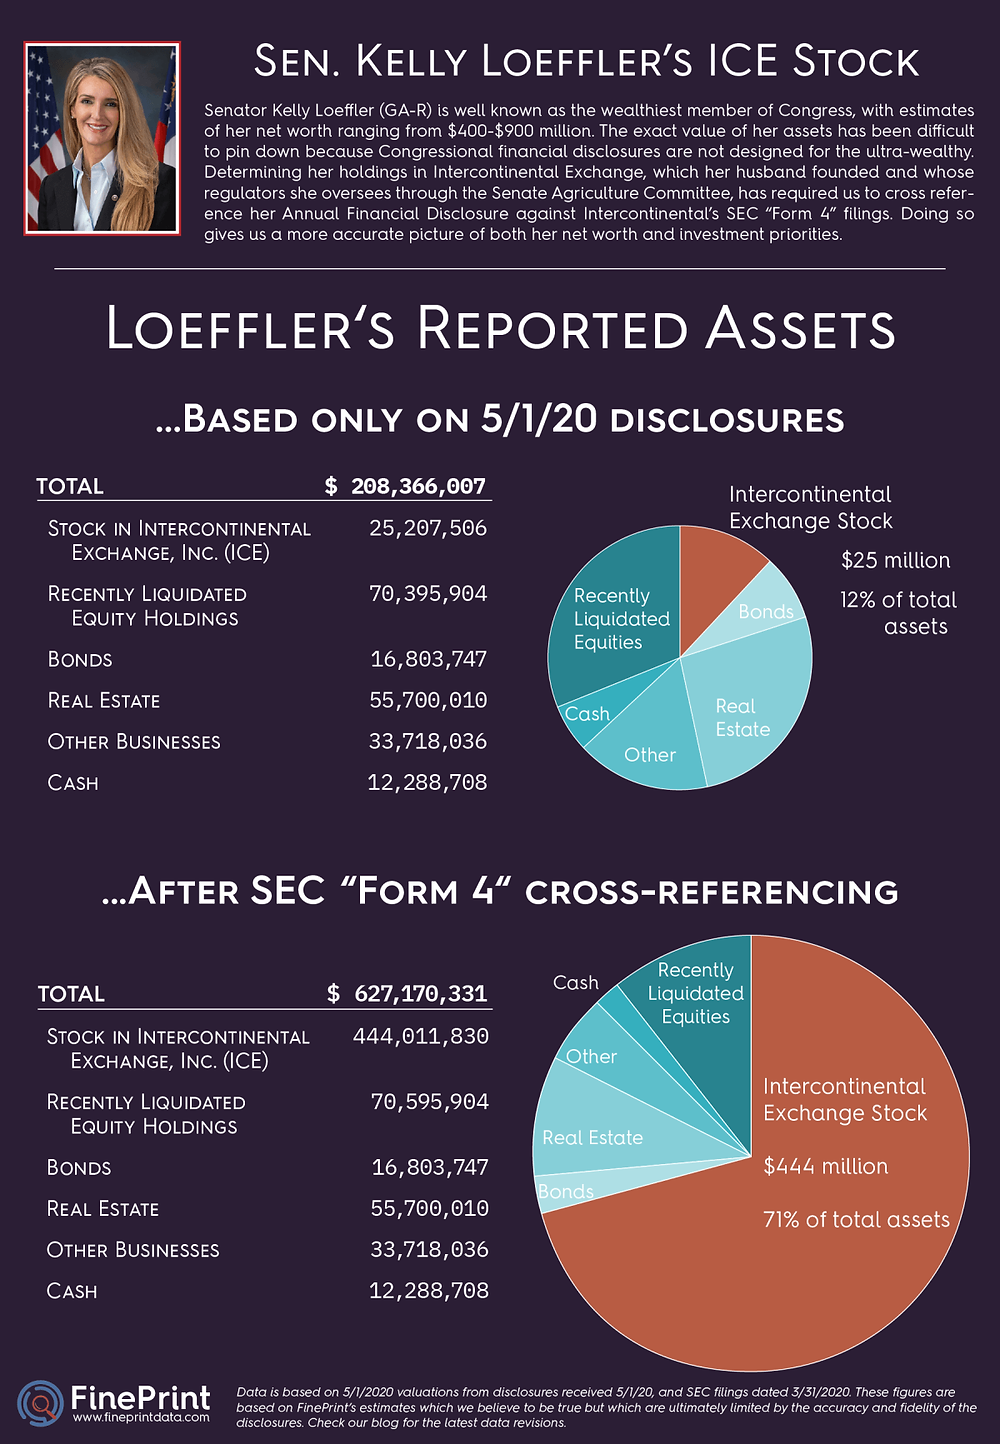 Infographic and data table displaying Georgia Senator Kelly Loeffler's investment holdings as of October 15, 2020